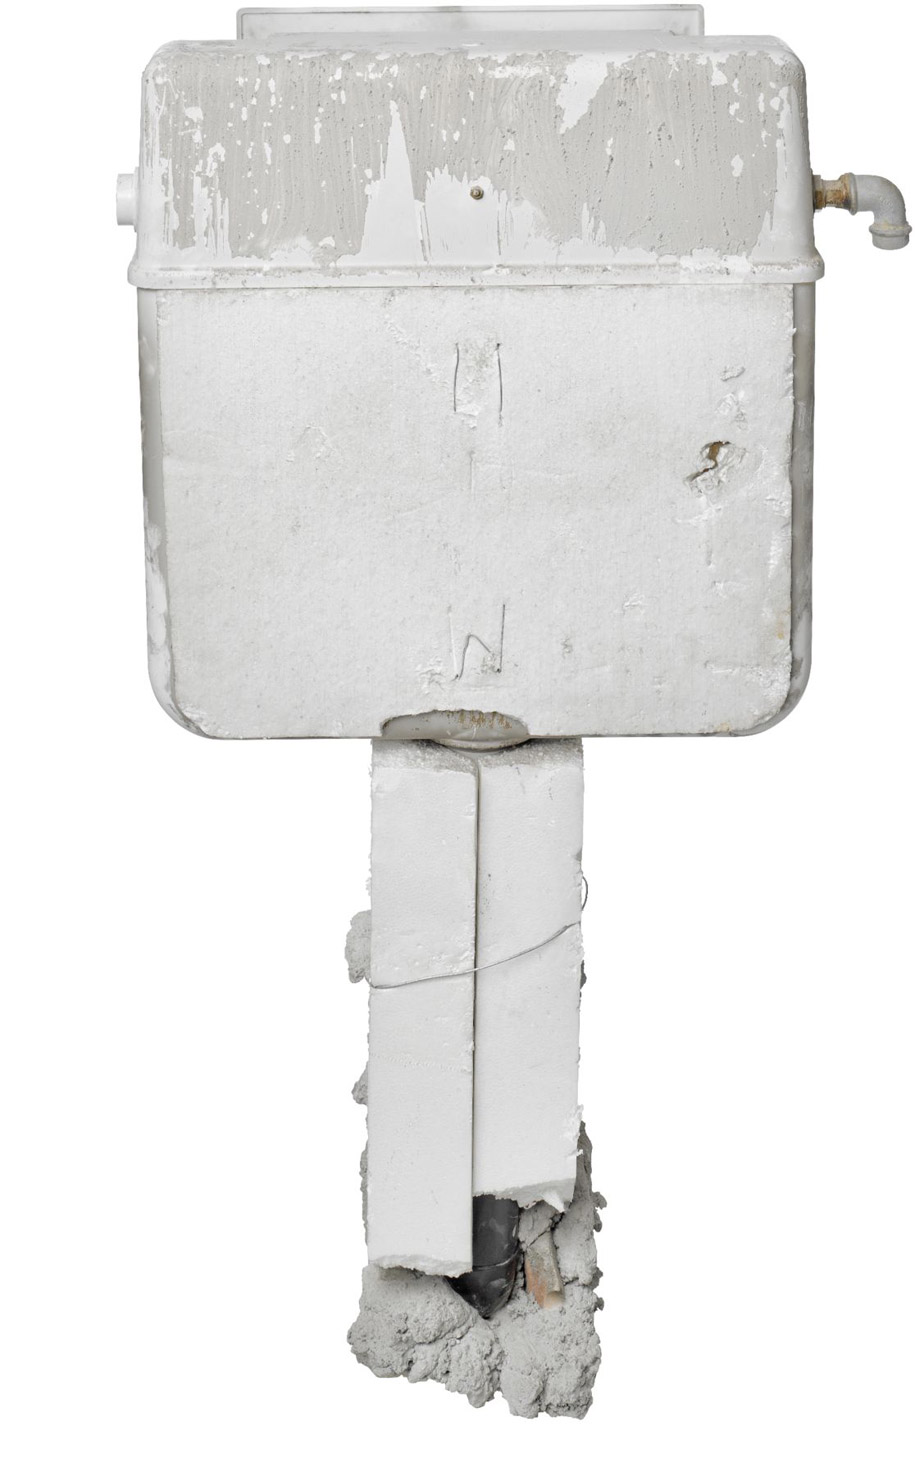 First-generation_concealed-cistern_1964